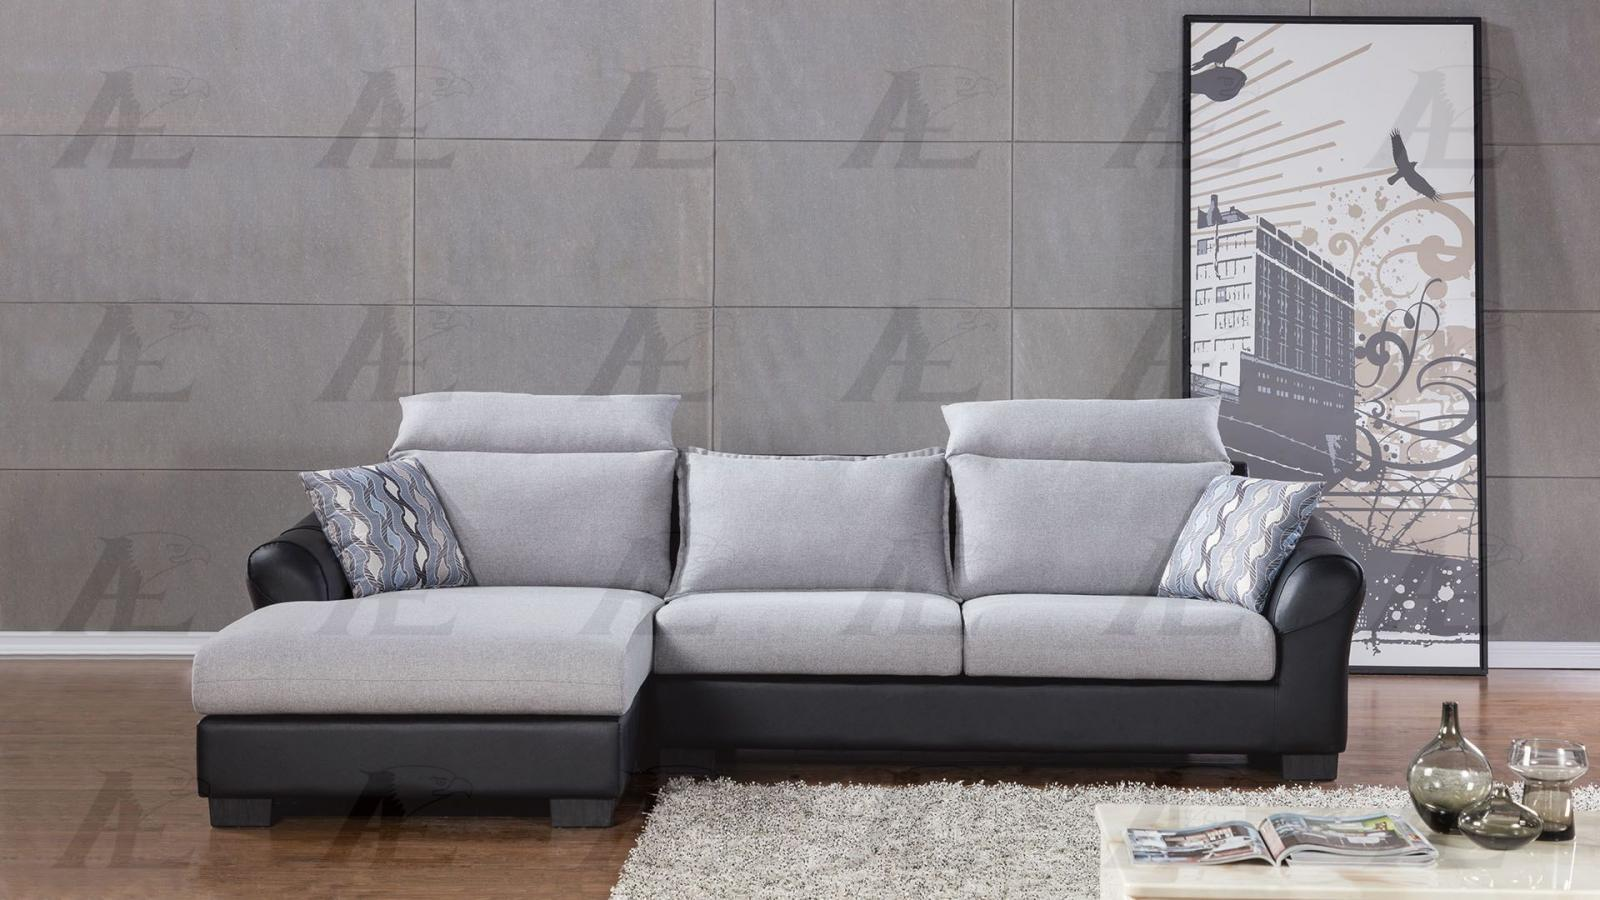 American Eagle AE-L2363M Light Gray Seactional Sofa Living Room Set Left 2Pcs